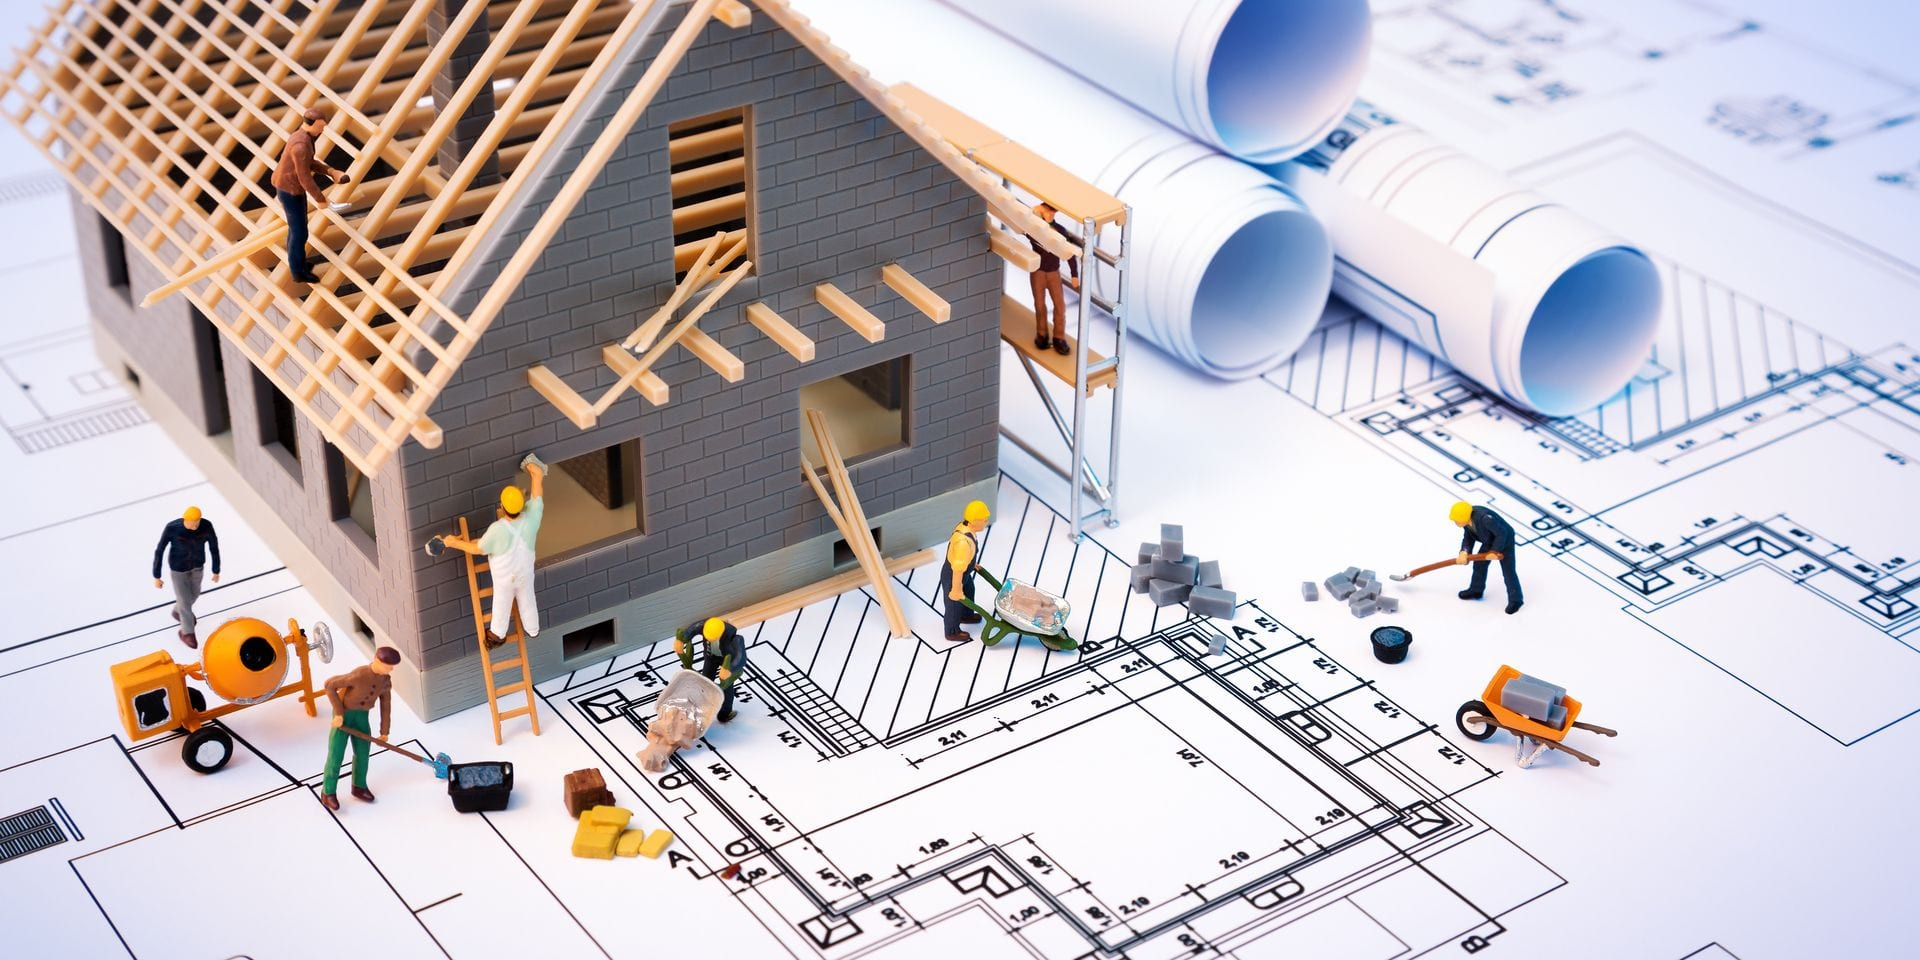 Building,House,On,Blueprints,With,Worker,-,Construction,Project